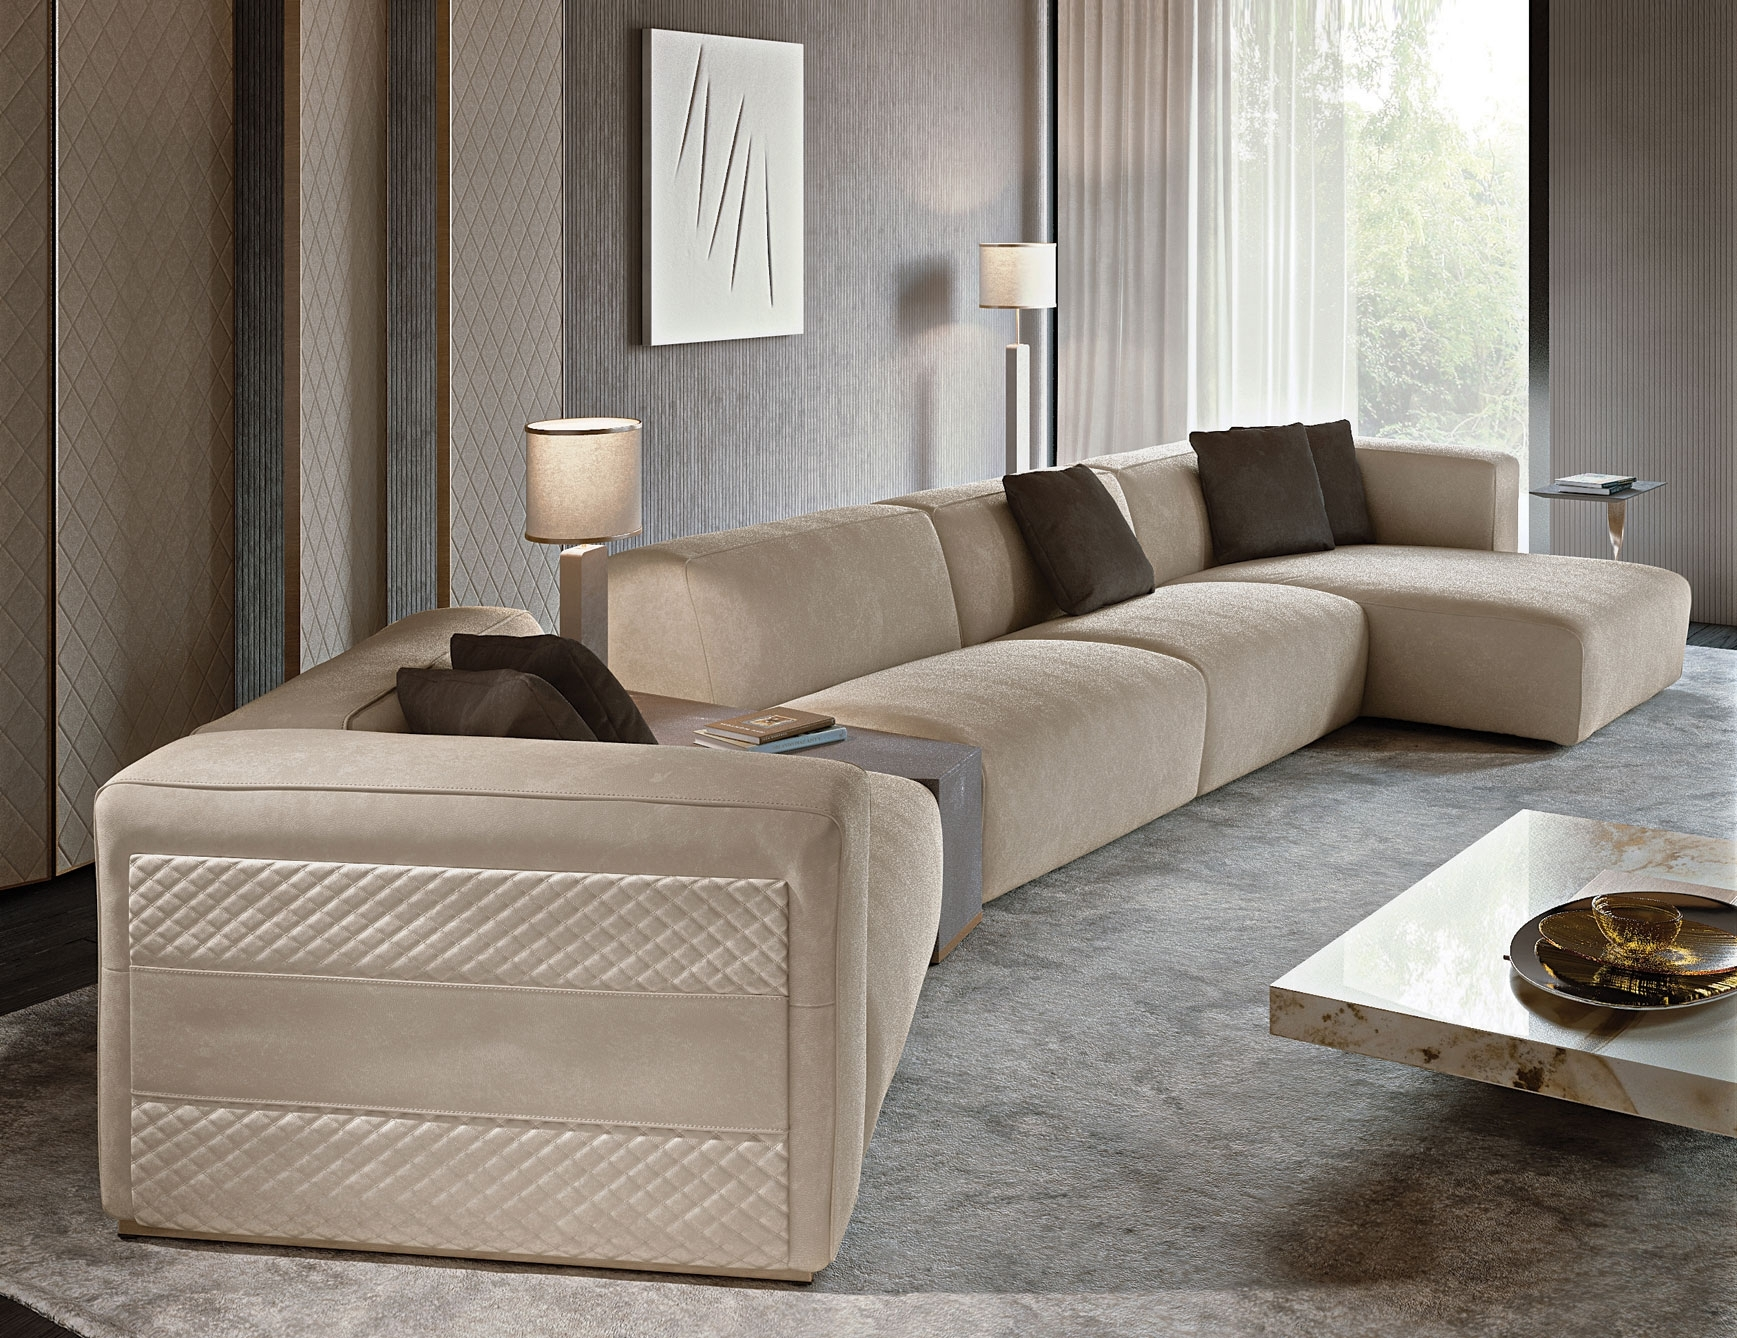 Nella Vetrina Rugiano Freud Sectional Sofa In Suede Regarding High End Sectional Sofas (Photo 3 of 10)